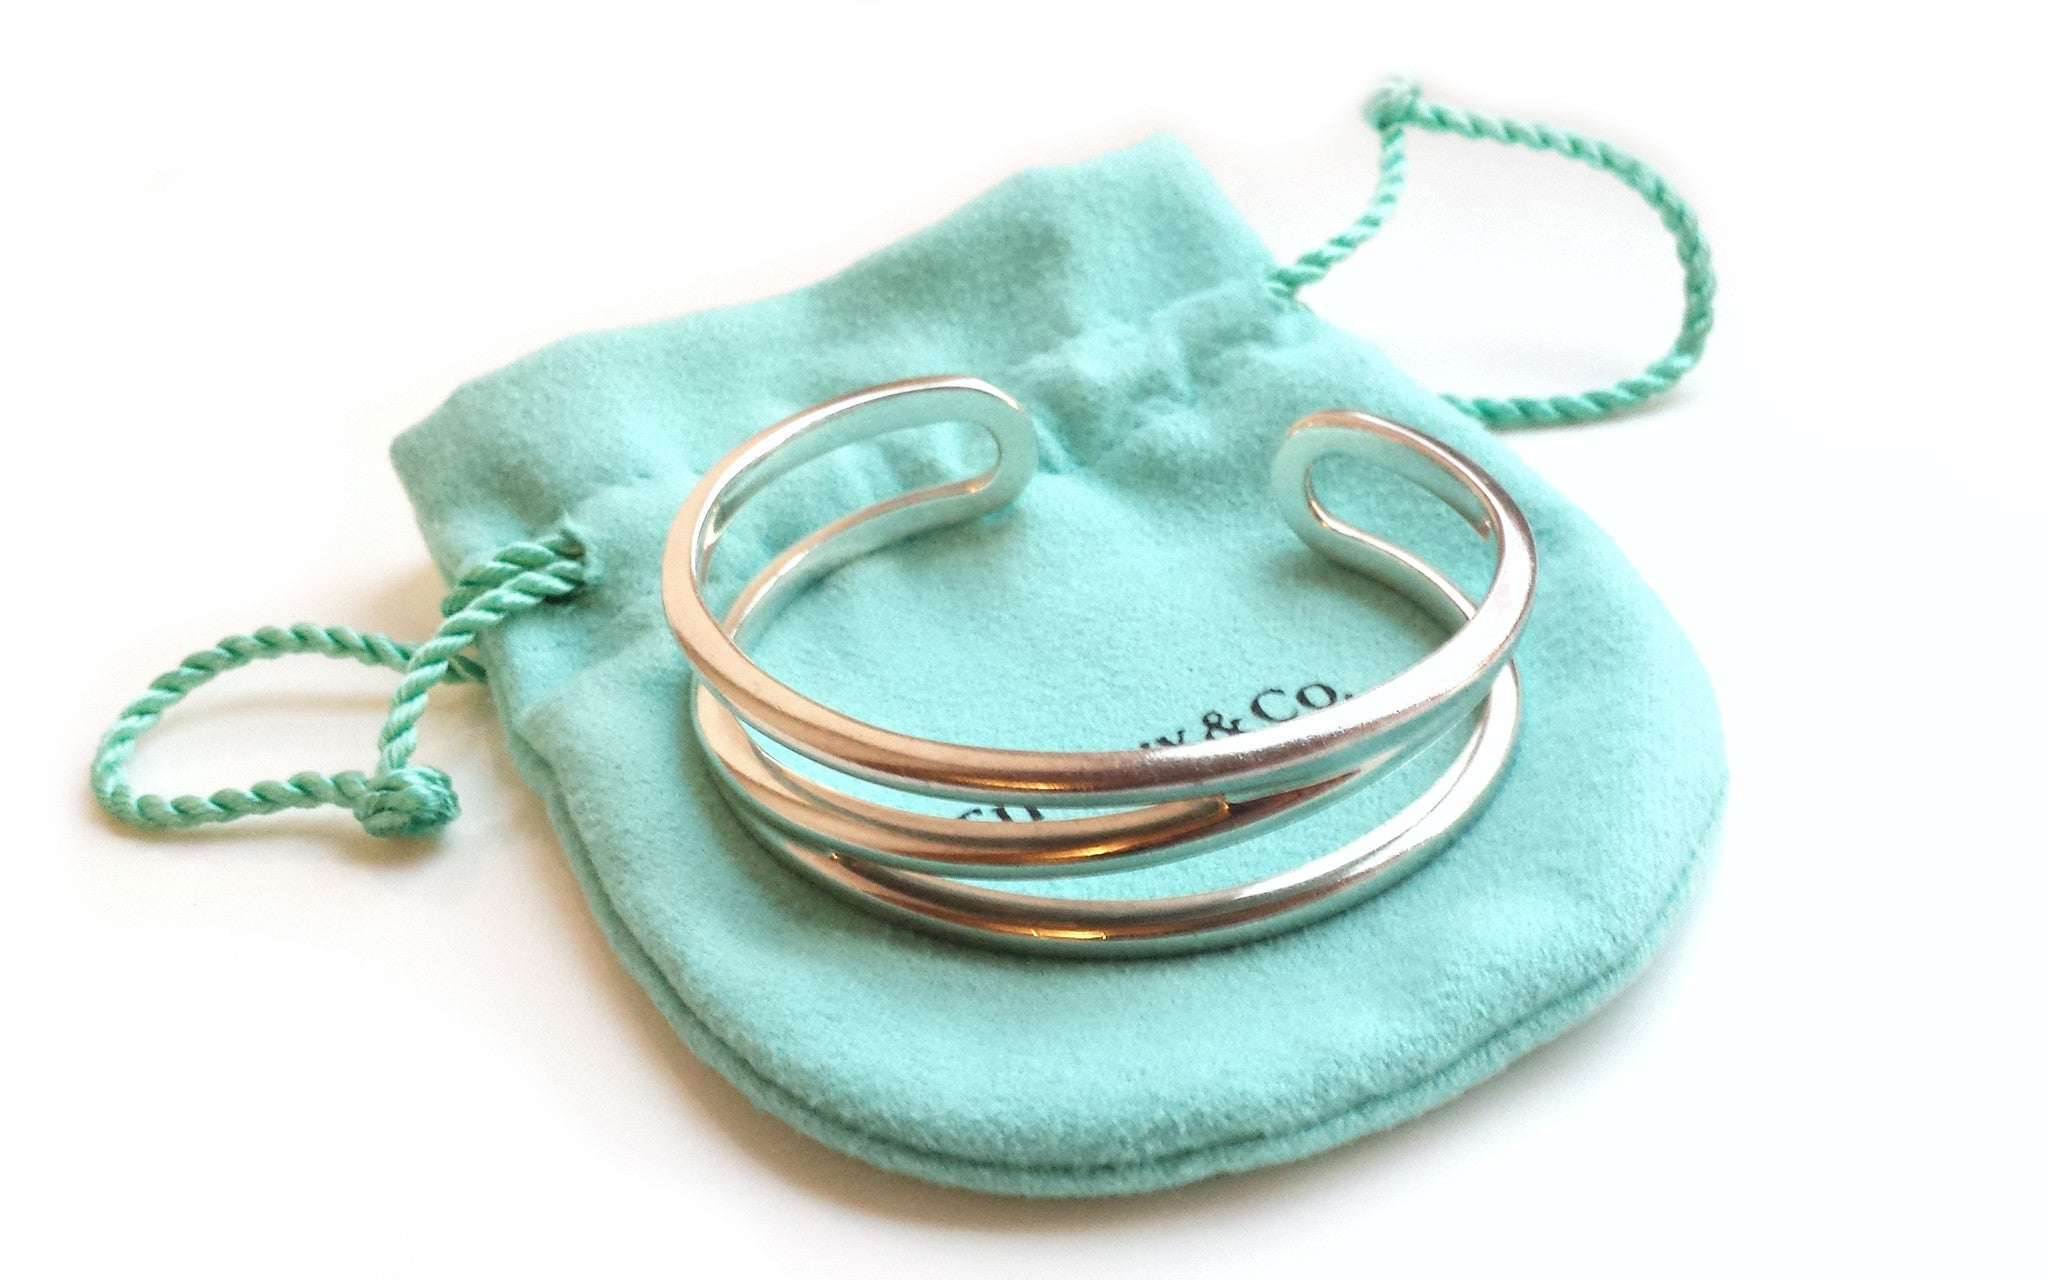 Tiffany & Co. Zig Zag Bracelet Sterling Silver – Small with Pouch